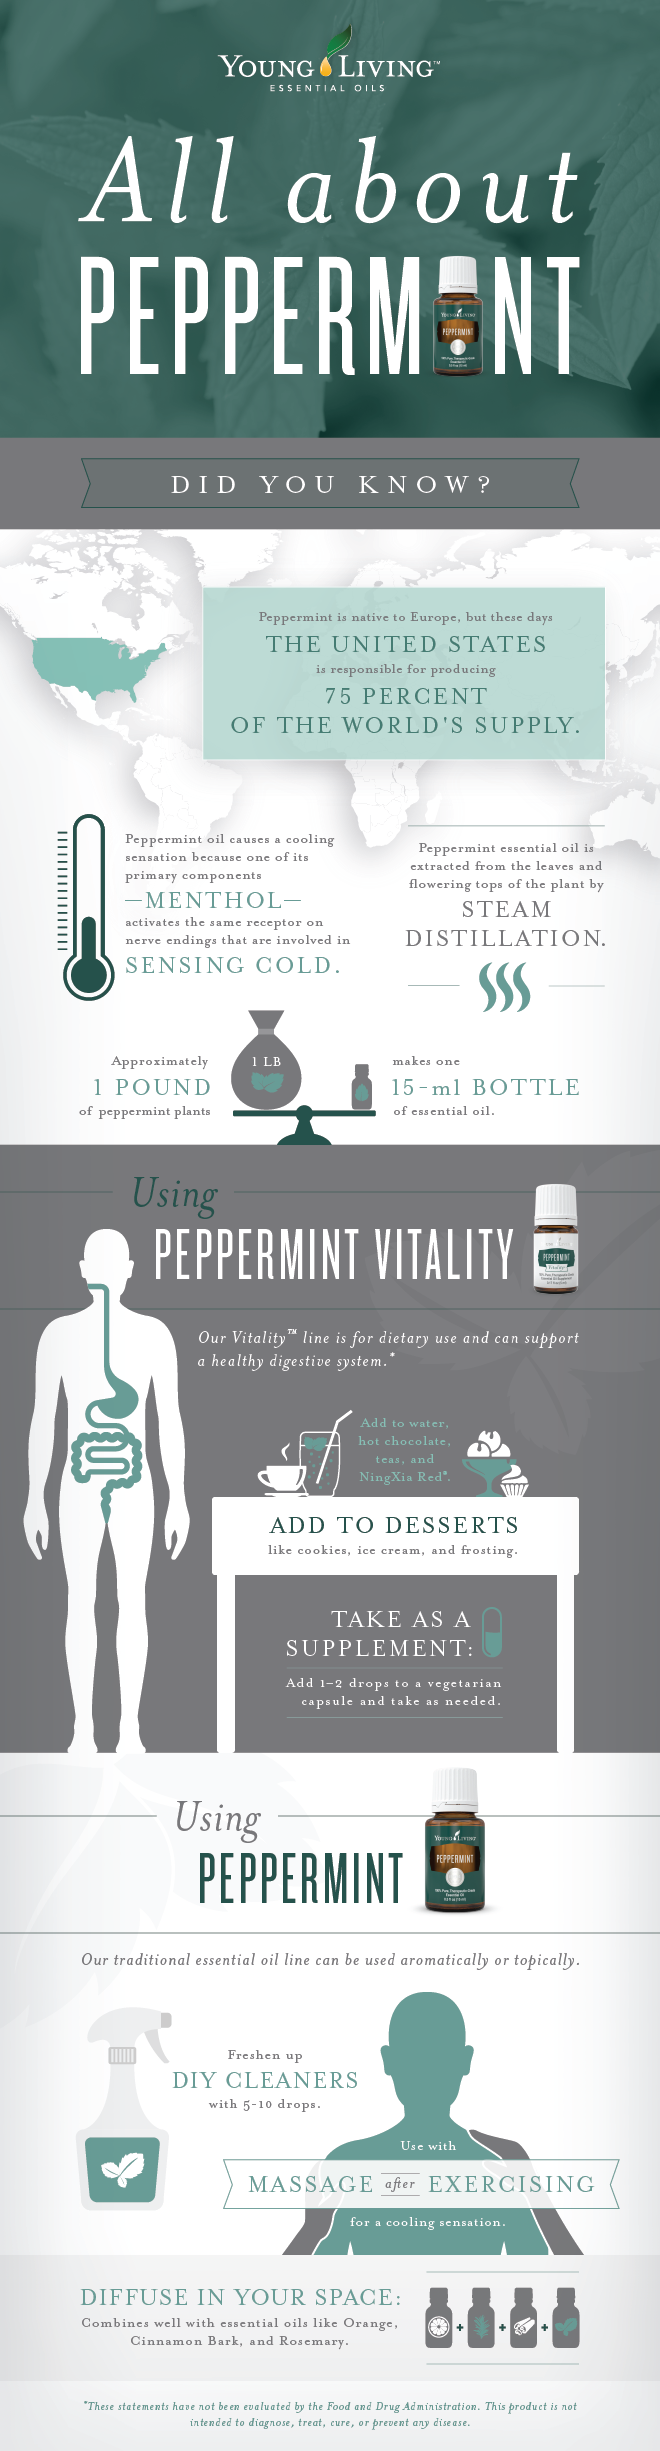 All about YL Peppermint Oil